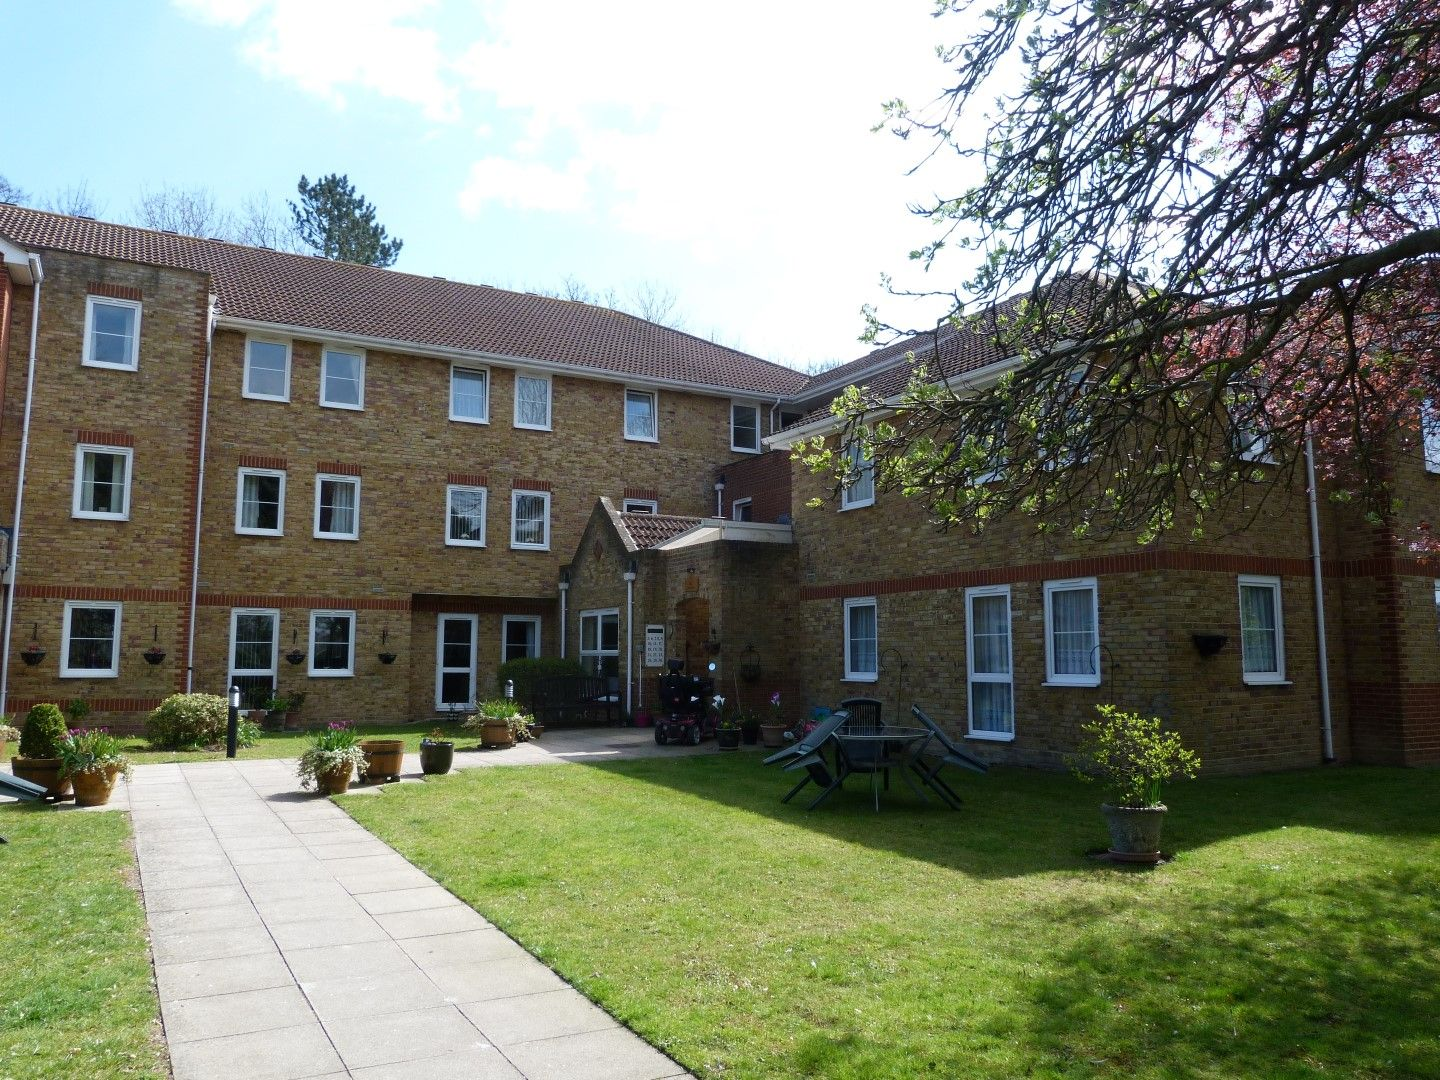 1 bedroom flat flat/apartment For Sale in Broadstairs - Property photograph